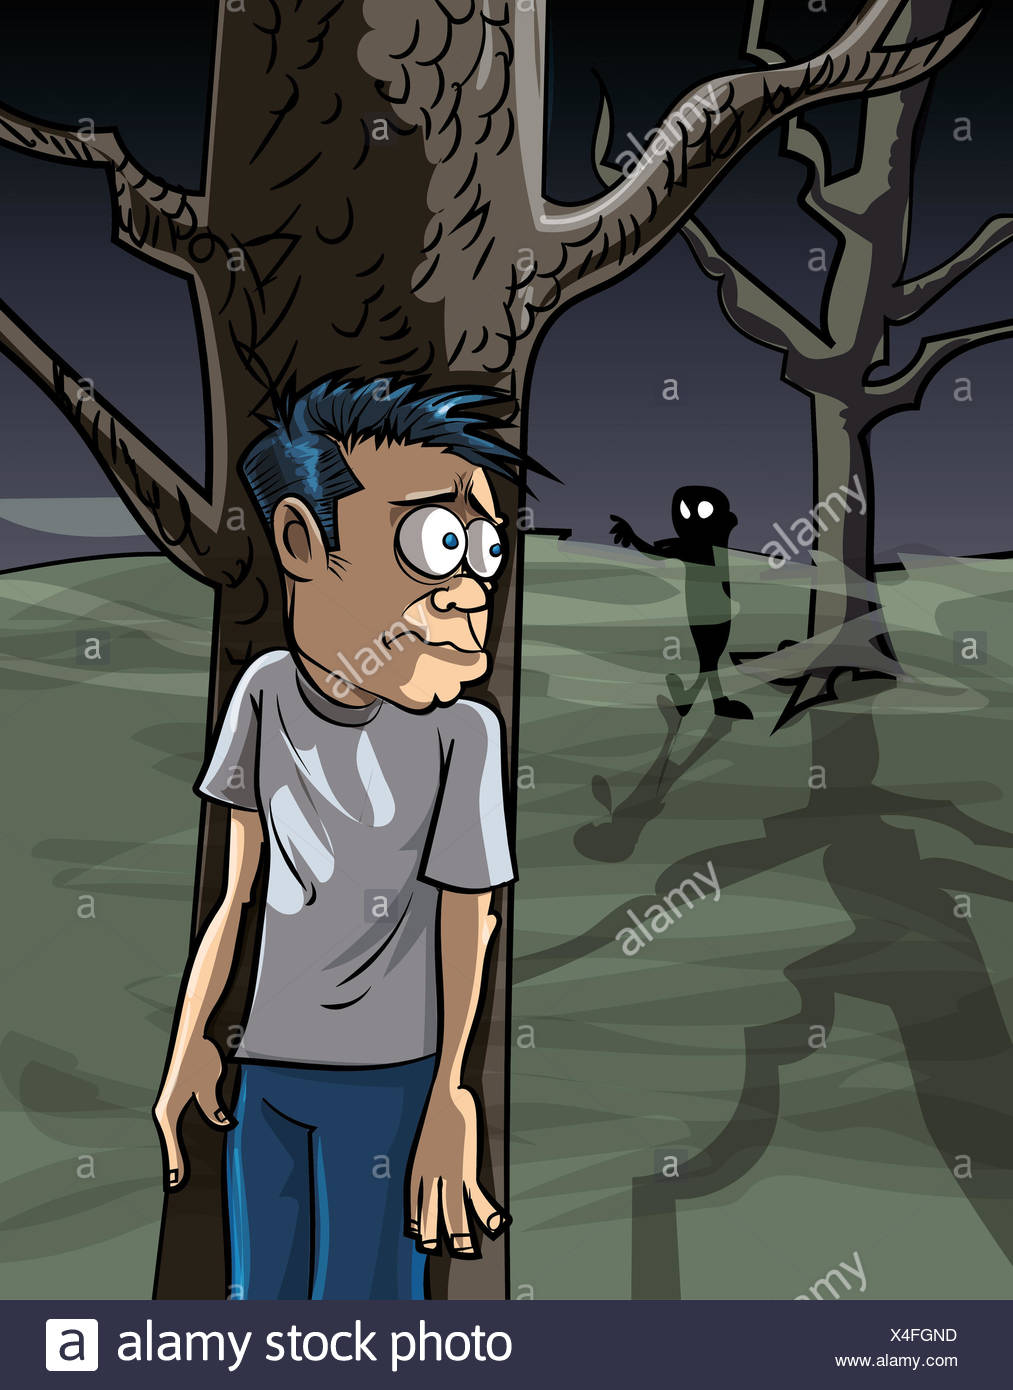 Cartoon Man Scared Stock Photos Amp Cartoon Man Scared Stock